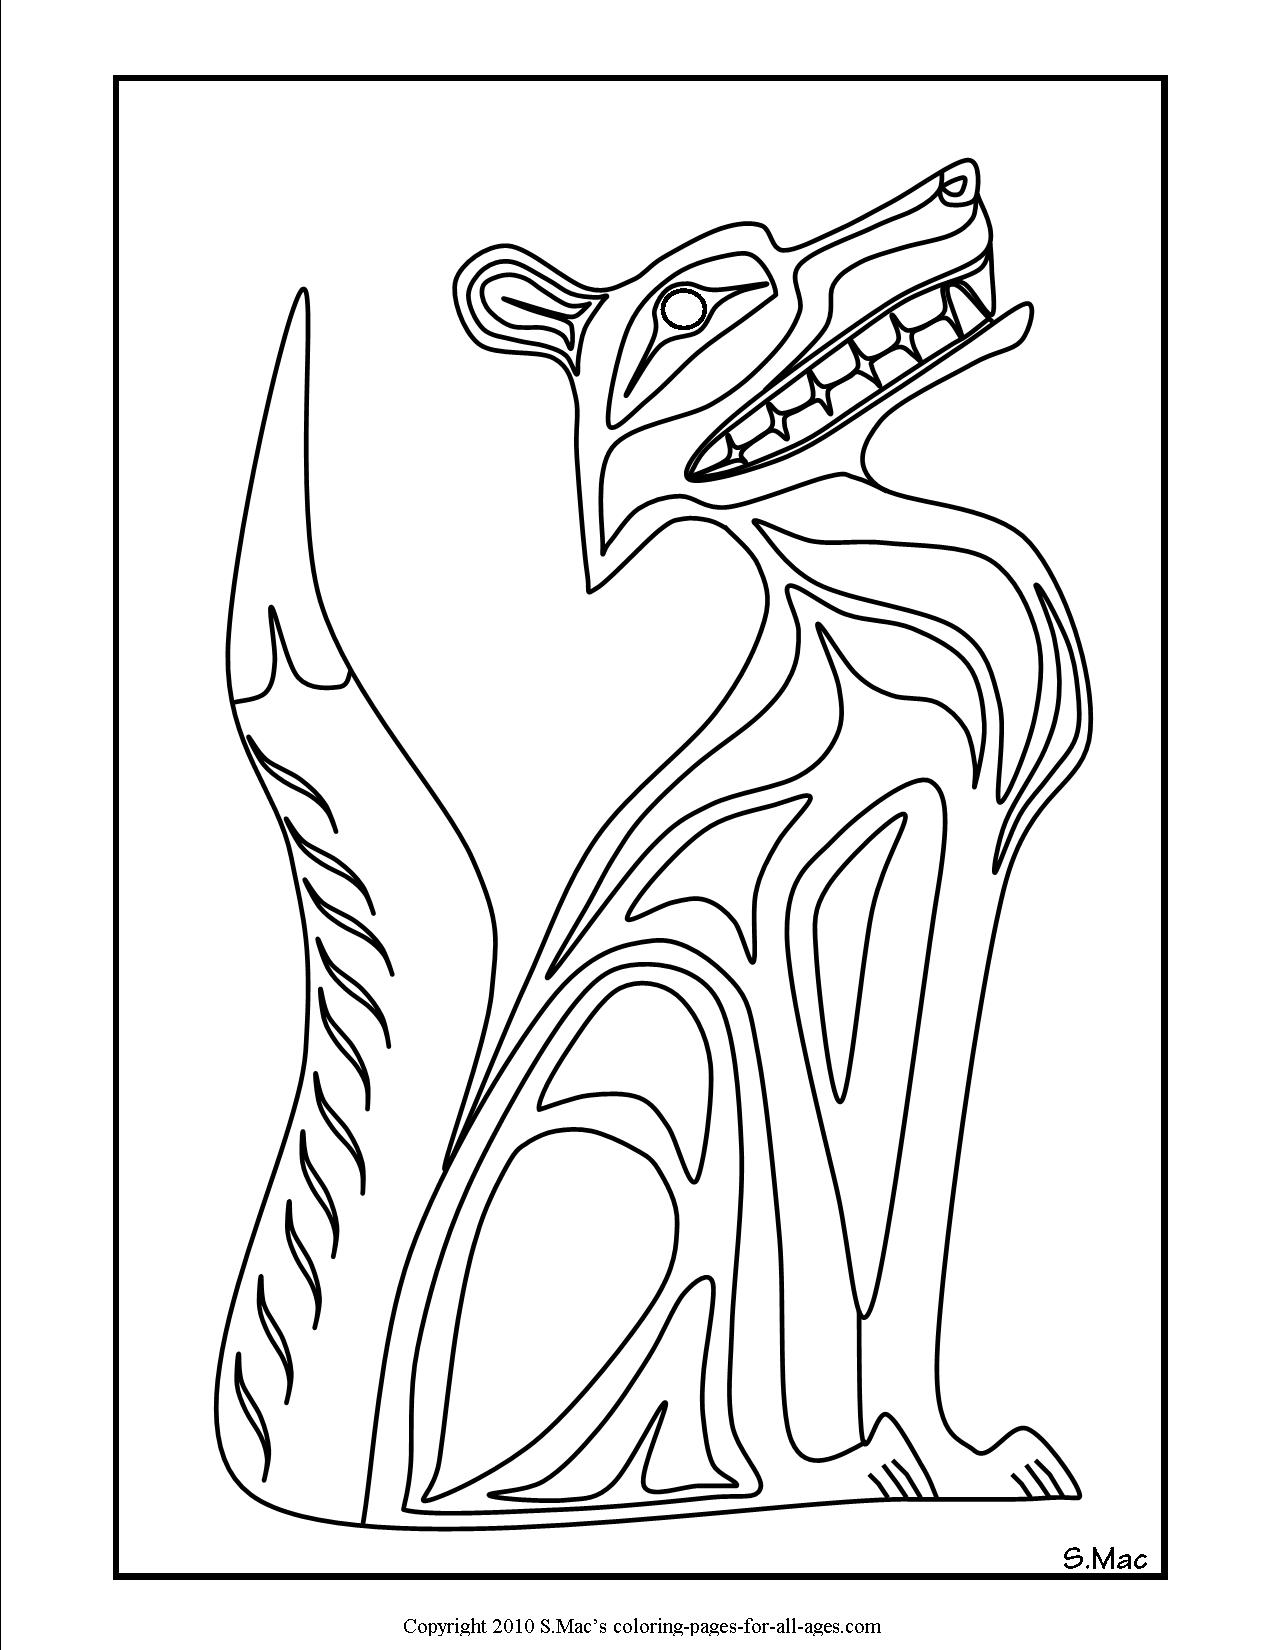 native american printable coloring pages native american designs coloring pages printables native american coloring printable pages